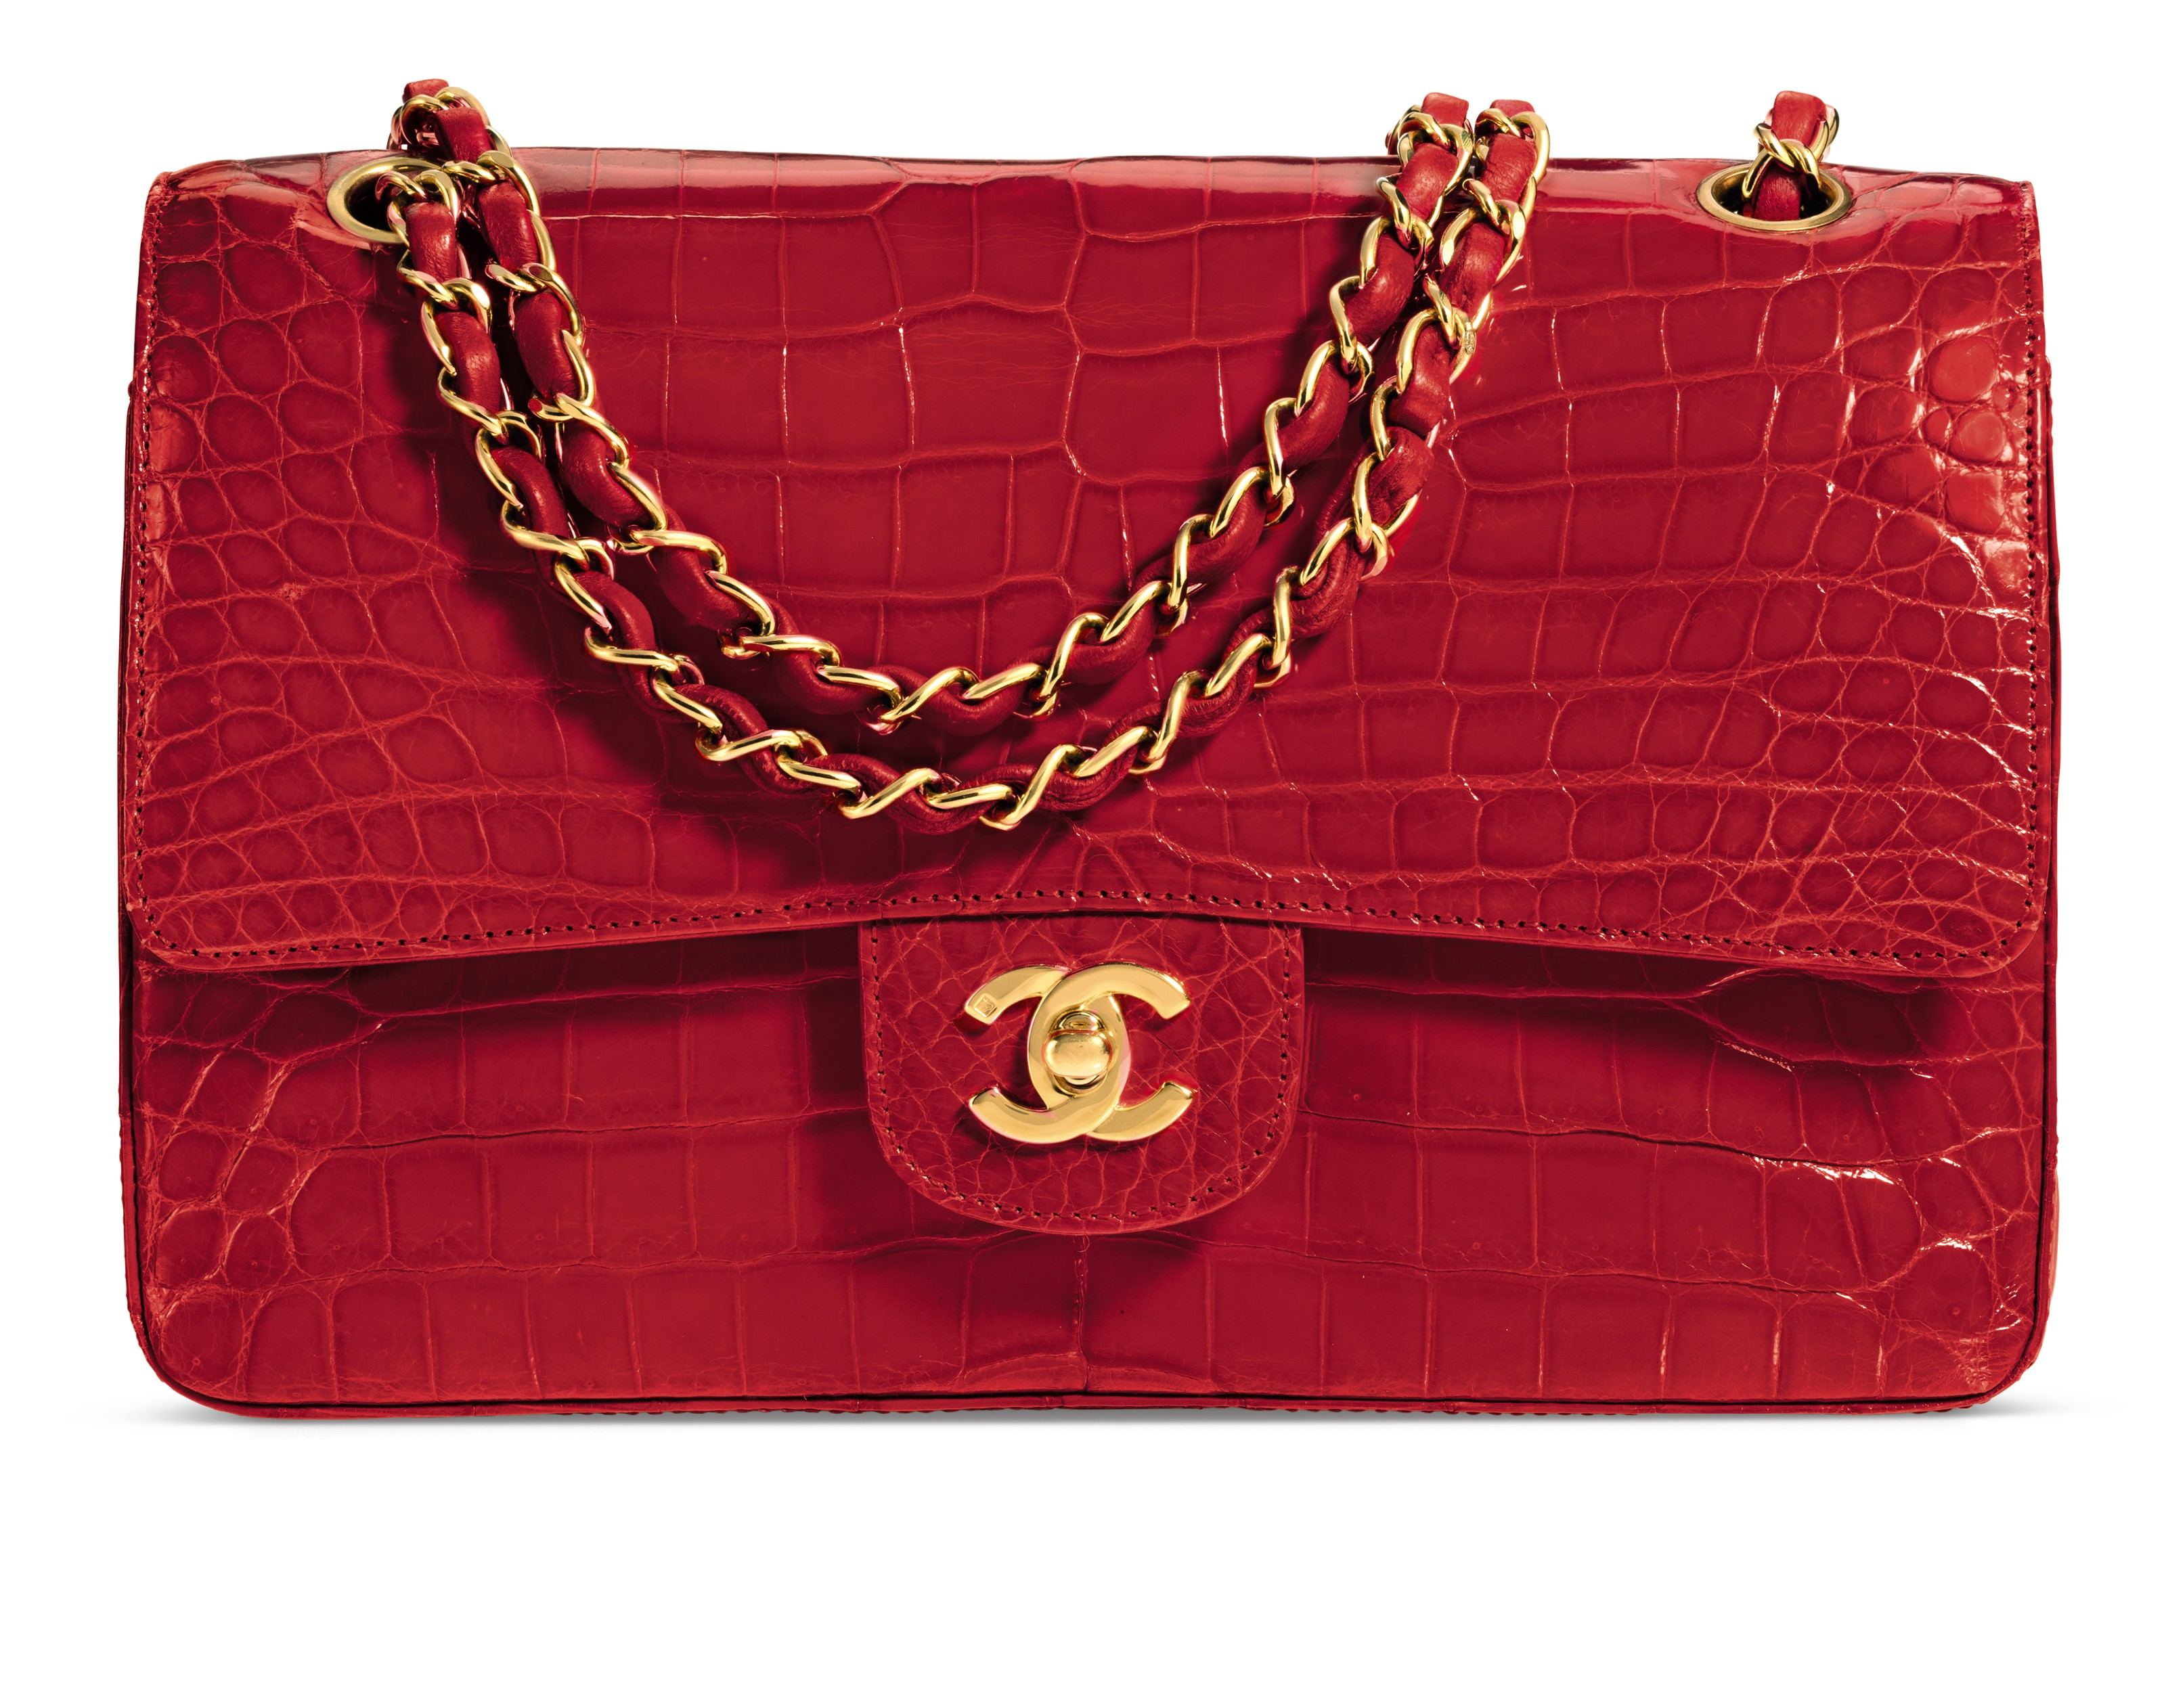 A SHINY RED ALLIGATOR CLASSIC MEDIUM DOUBLE FLAP BAG WITH GOLD HARDWARE